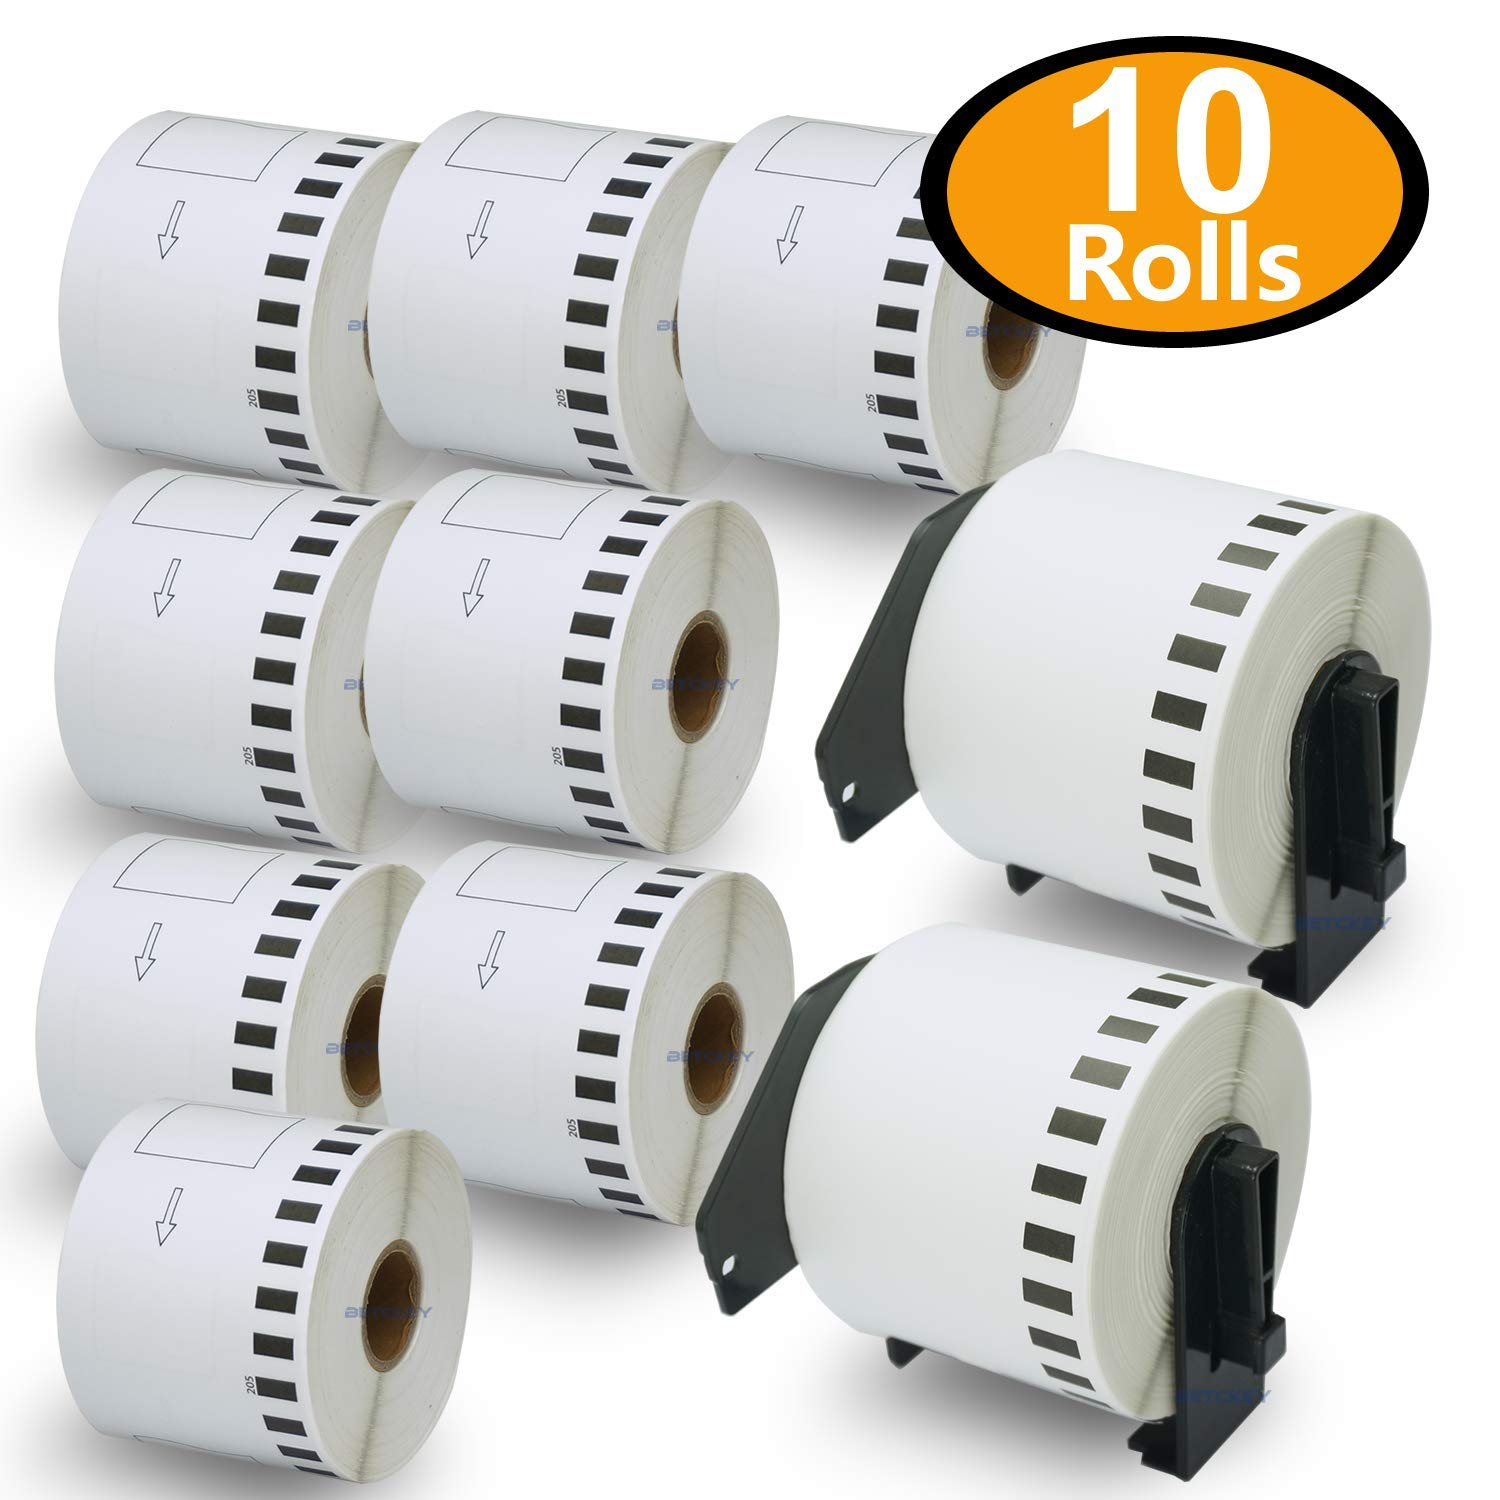 BETCKEY - 10 Rolls Compatible Brother DK-2205 62mm x 30.48m(2-3/7'' x 100') Continuous Length Paper Tape Labels With Two Refillable Cartridge Frame by BETCKEY